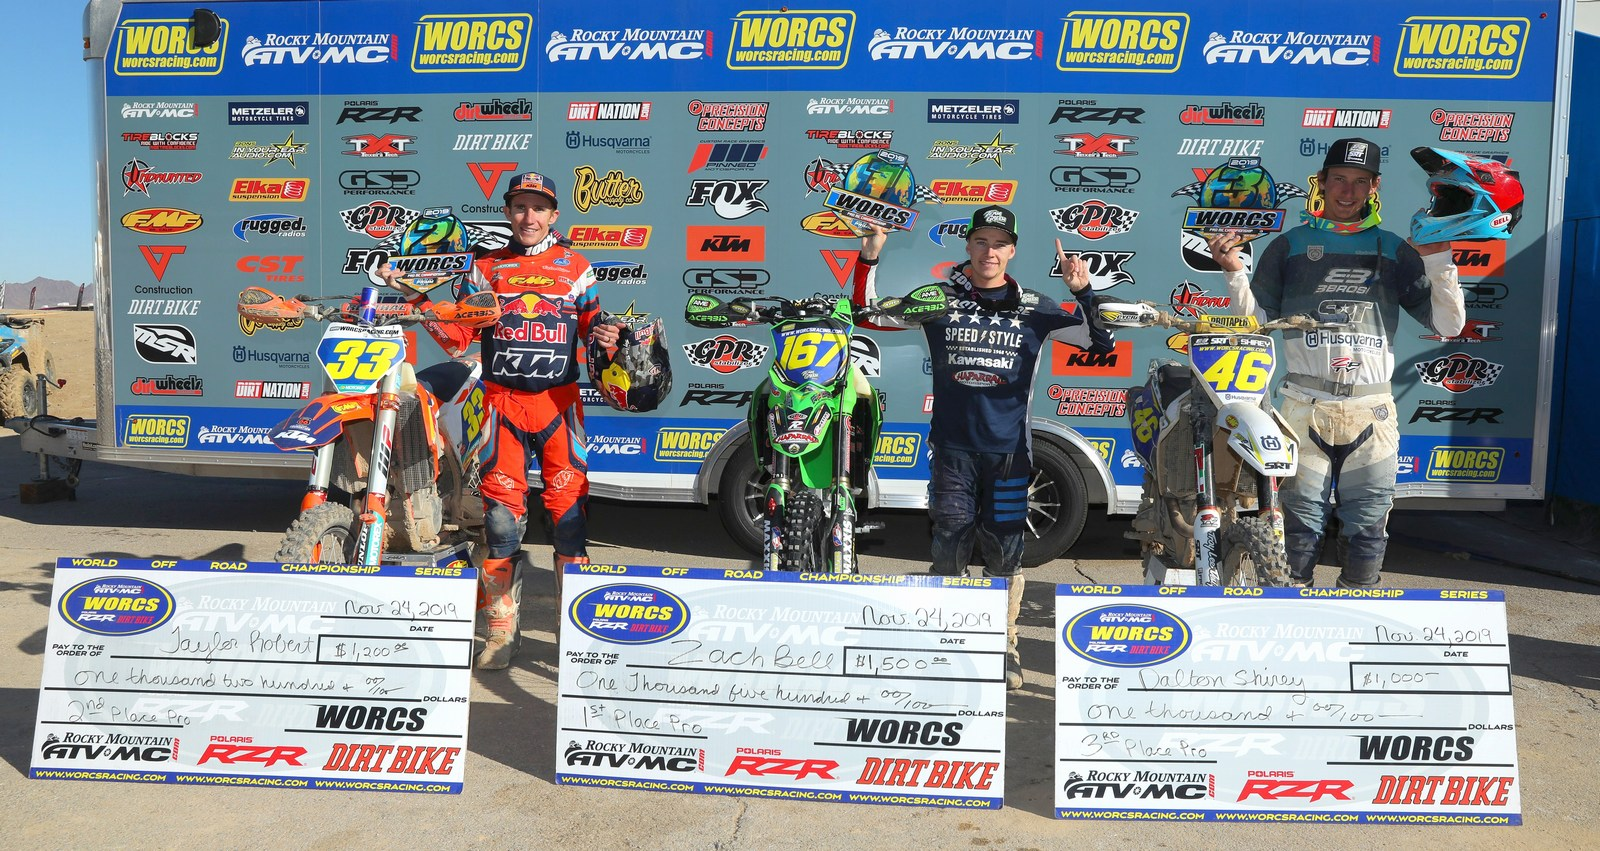 11-podium-pro-motorcycle-worcs-racing